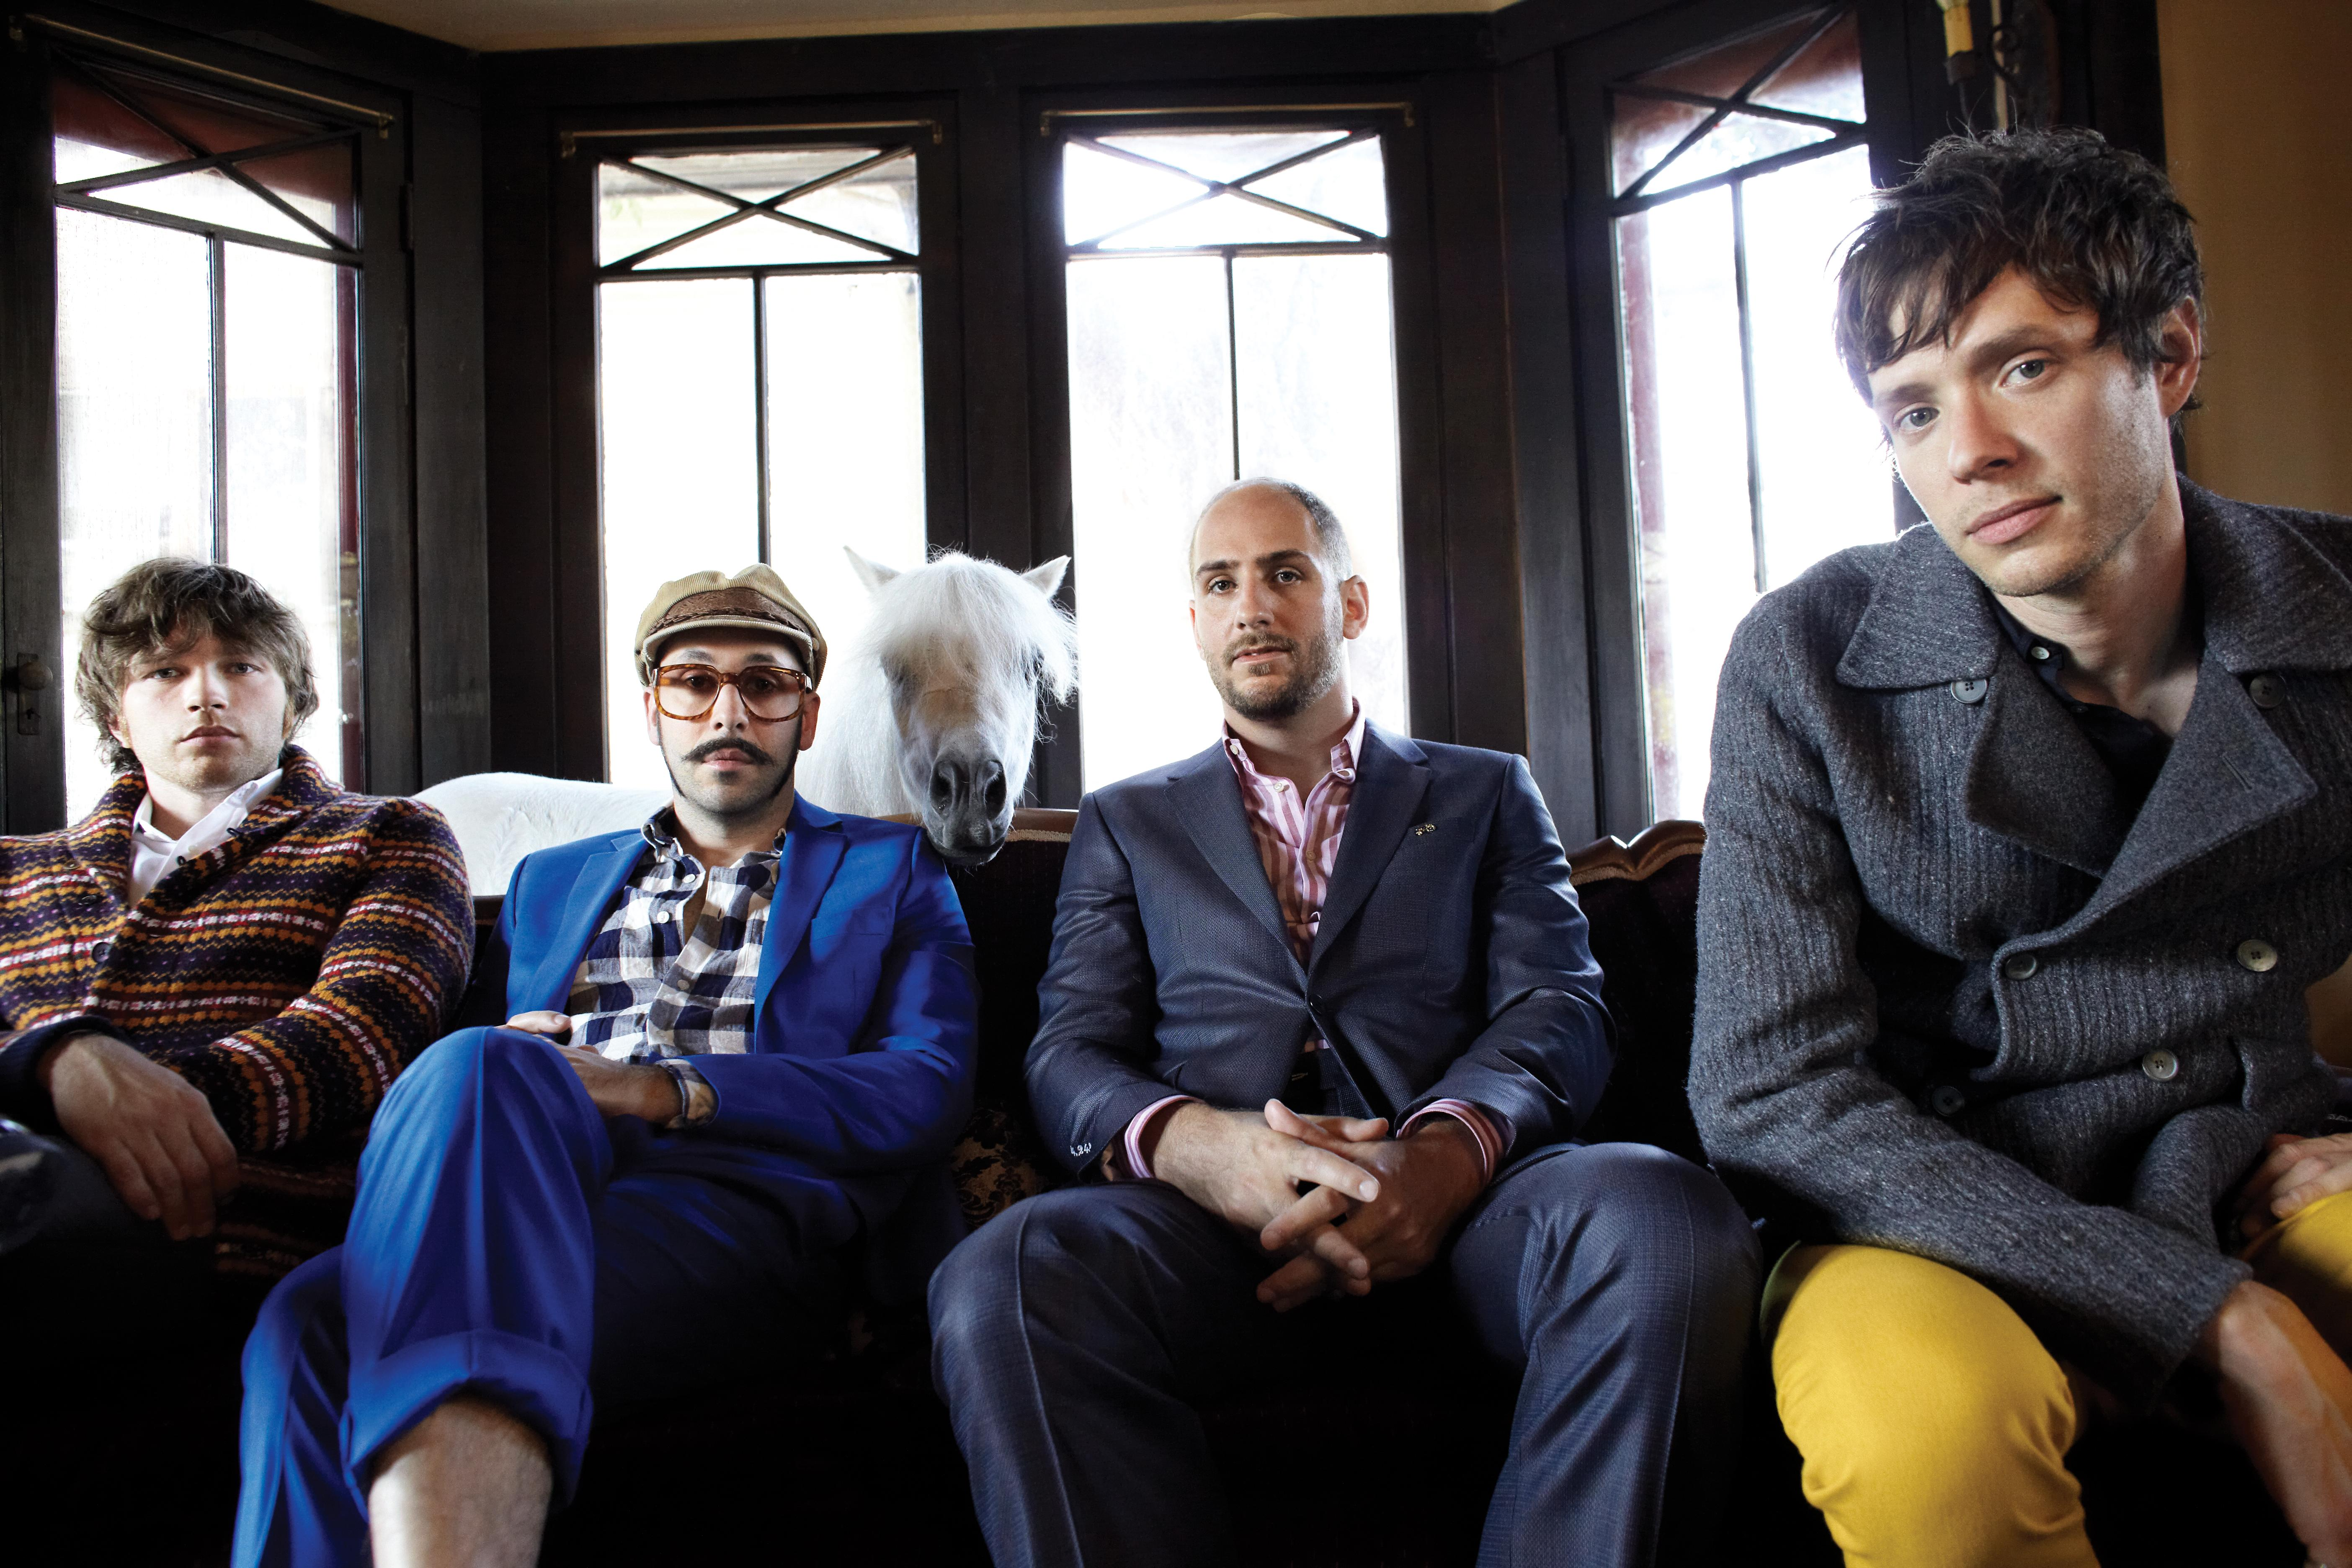 Beady Eye, OK Go, Wombats, Kanye West - 10 Best Free MP3 Downloads